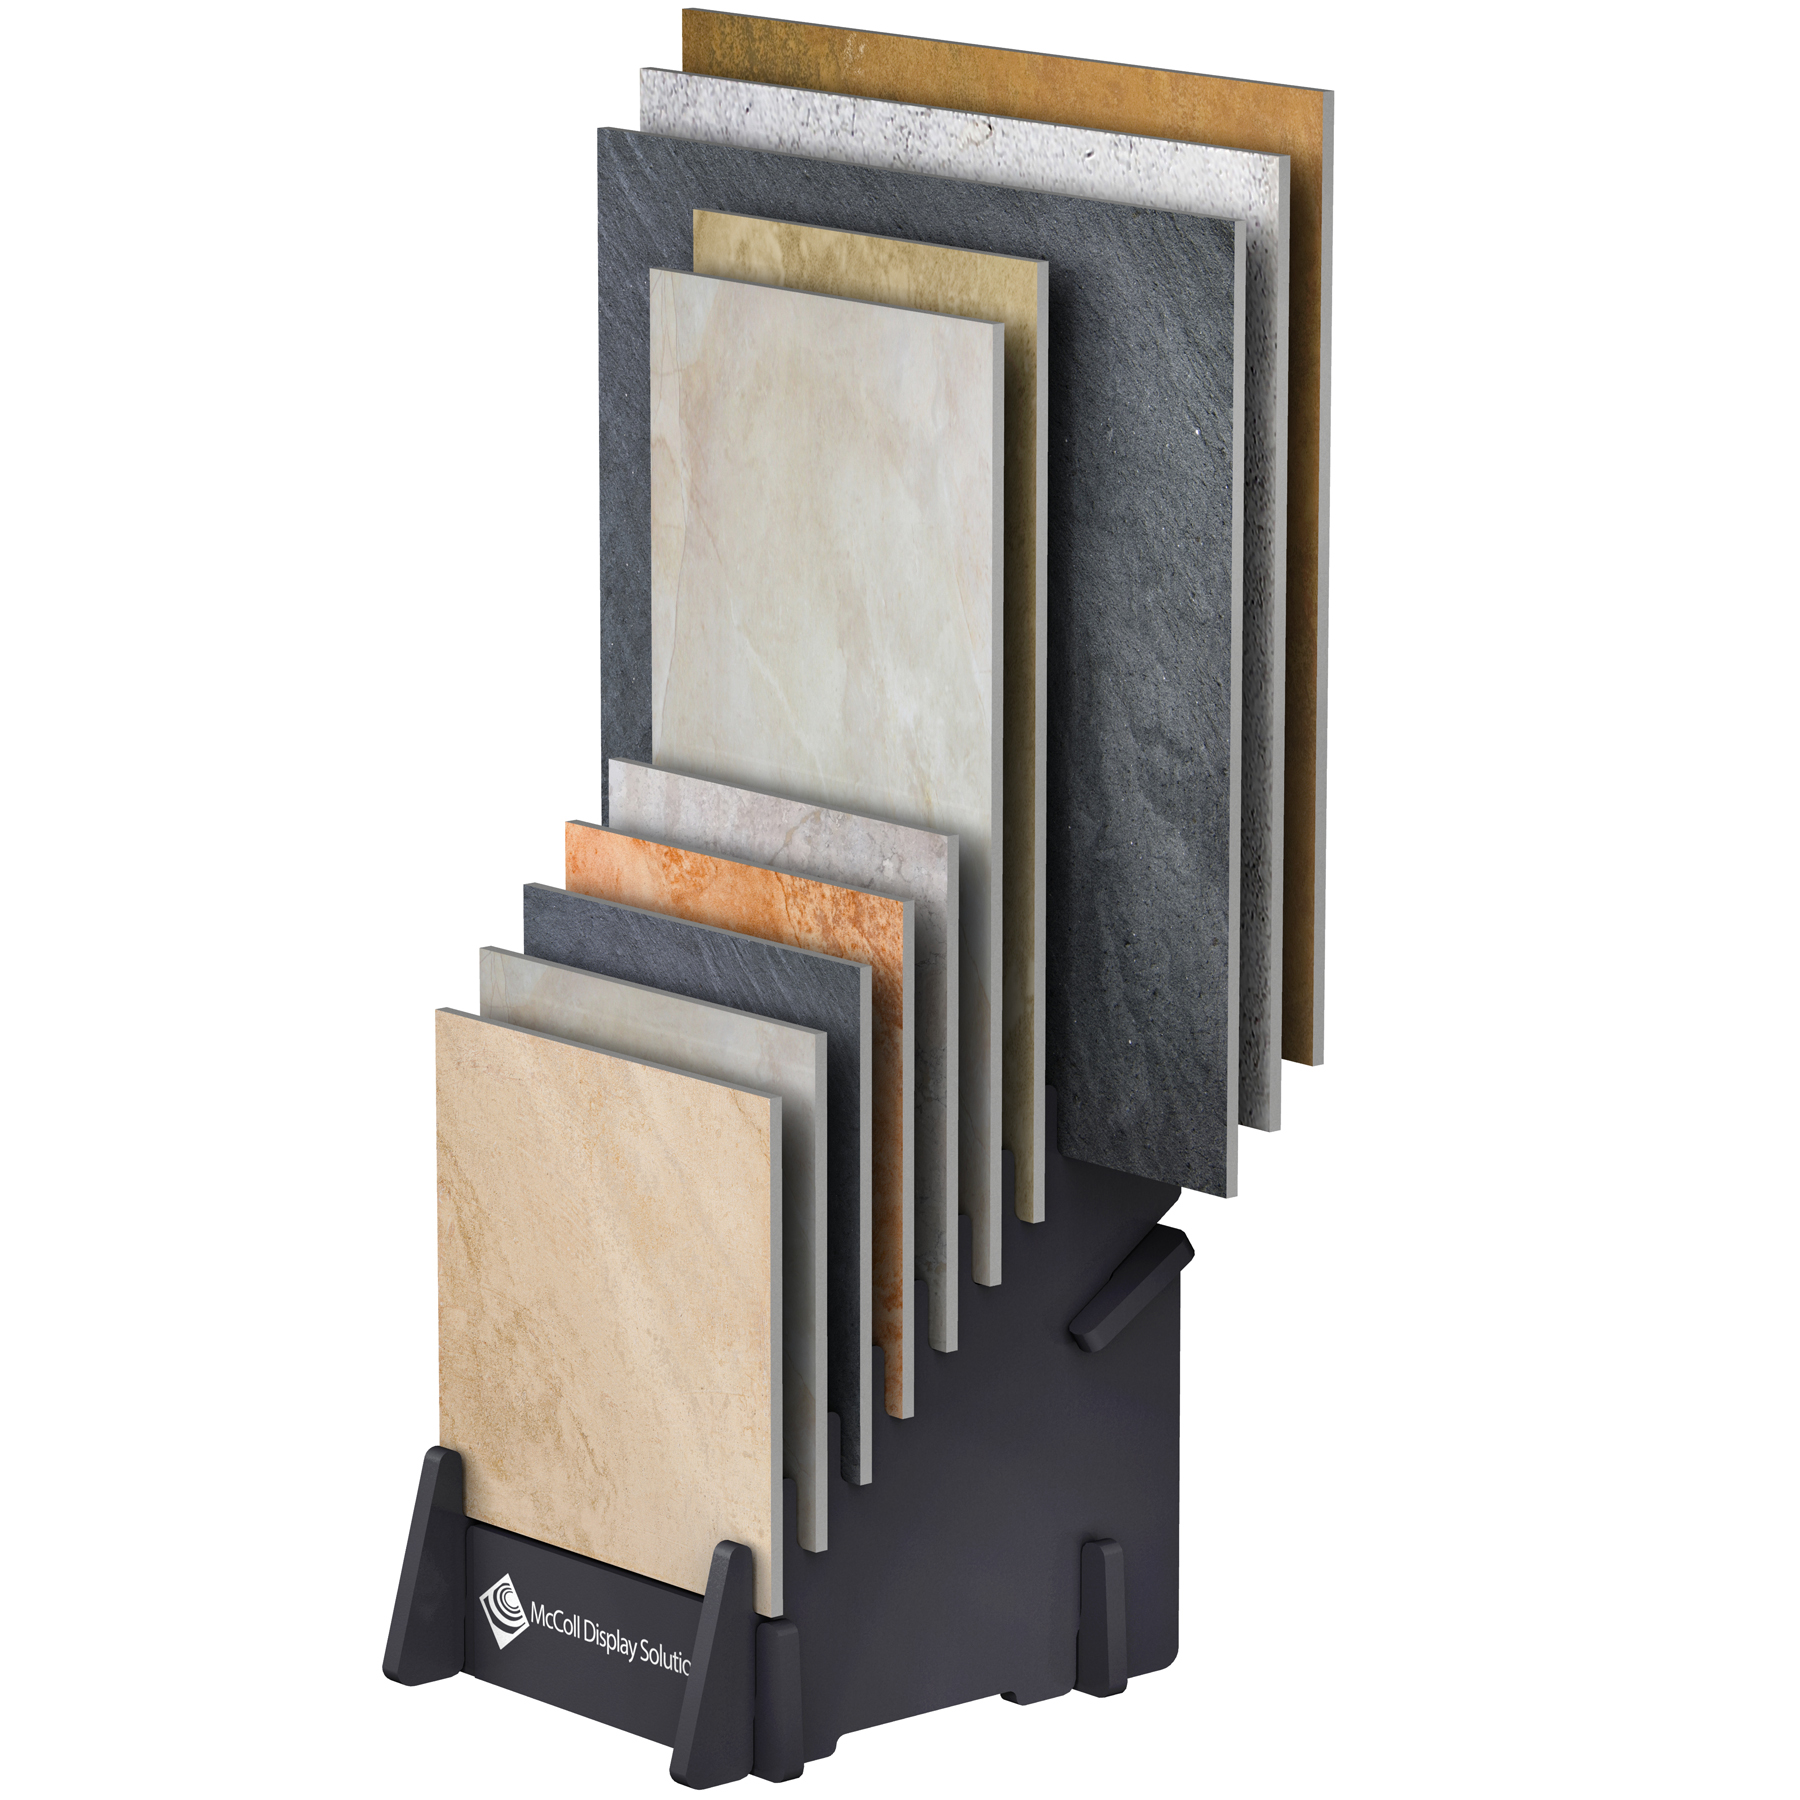 ST10 Slip-Fit Easy Assembly Ten Slot Display In Stock Ready to Ship Holds Ceramic Tile Flooring Showroom Samples